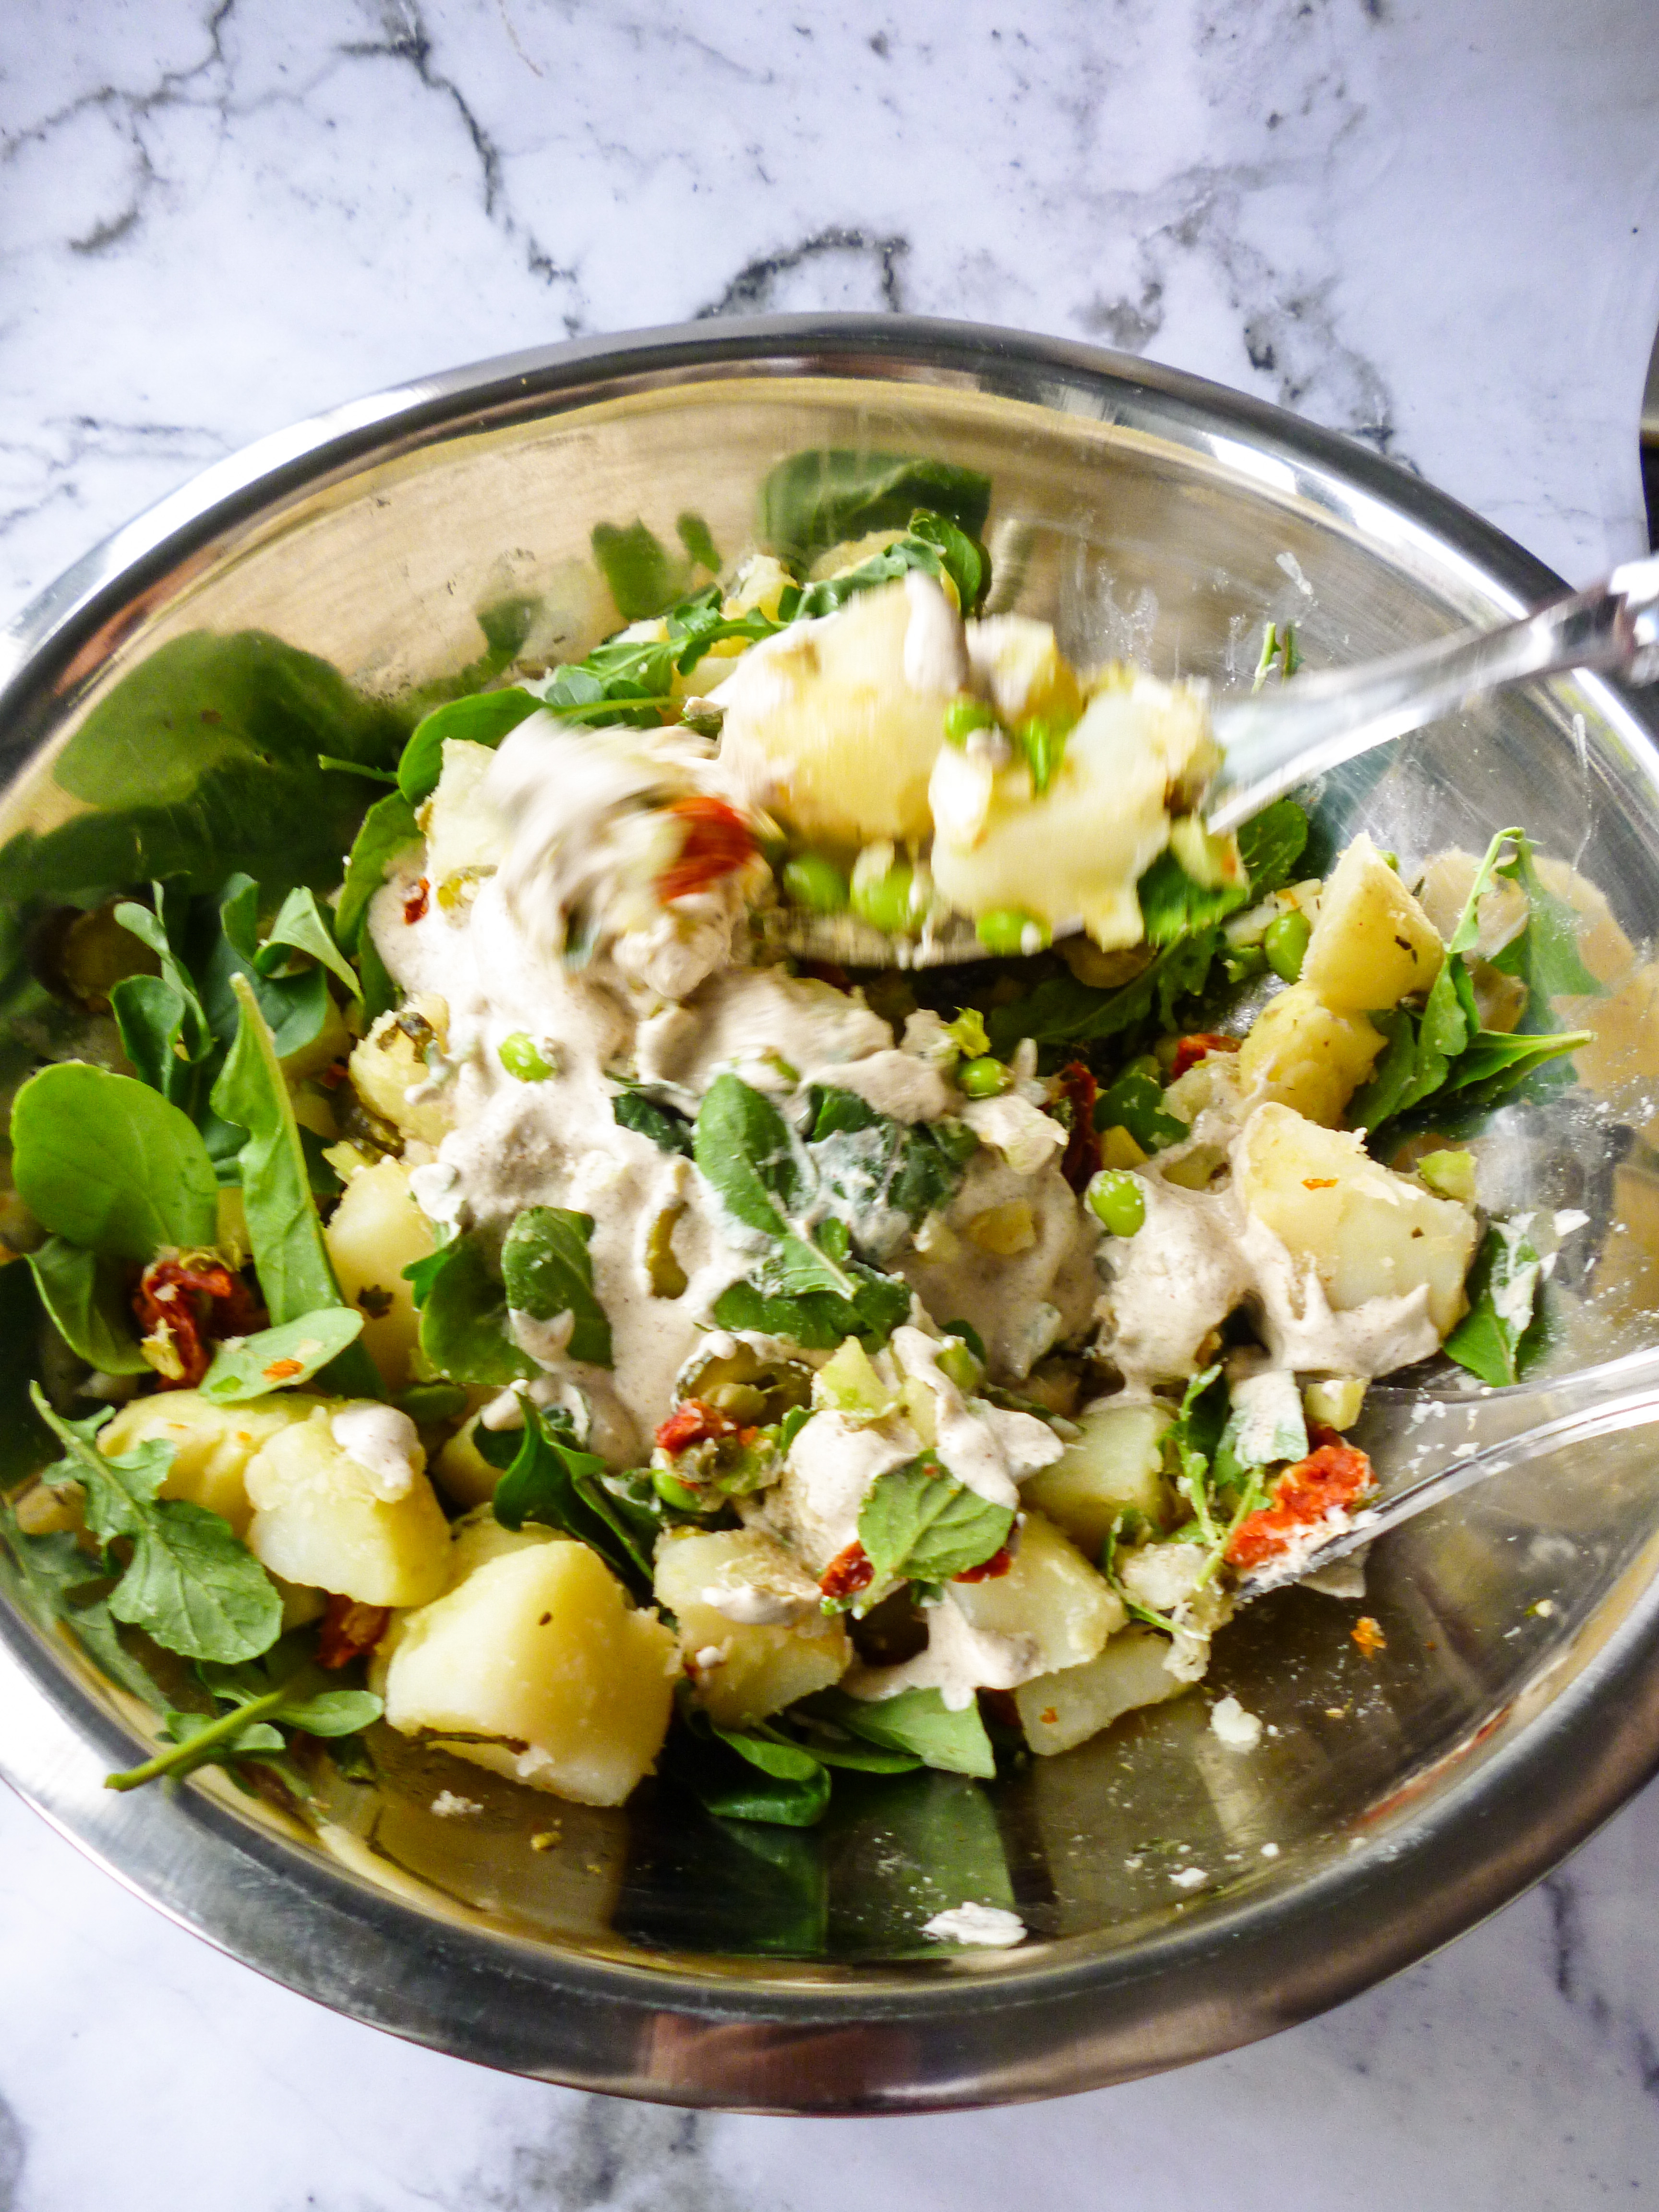 Potato Salad with Coconut Bacon, Roasted Almonds, Edamame Beans and a Creamy Almond Tahini Dressing 5